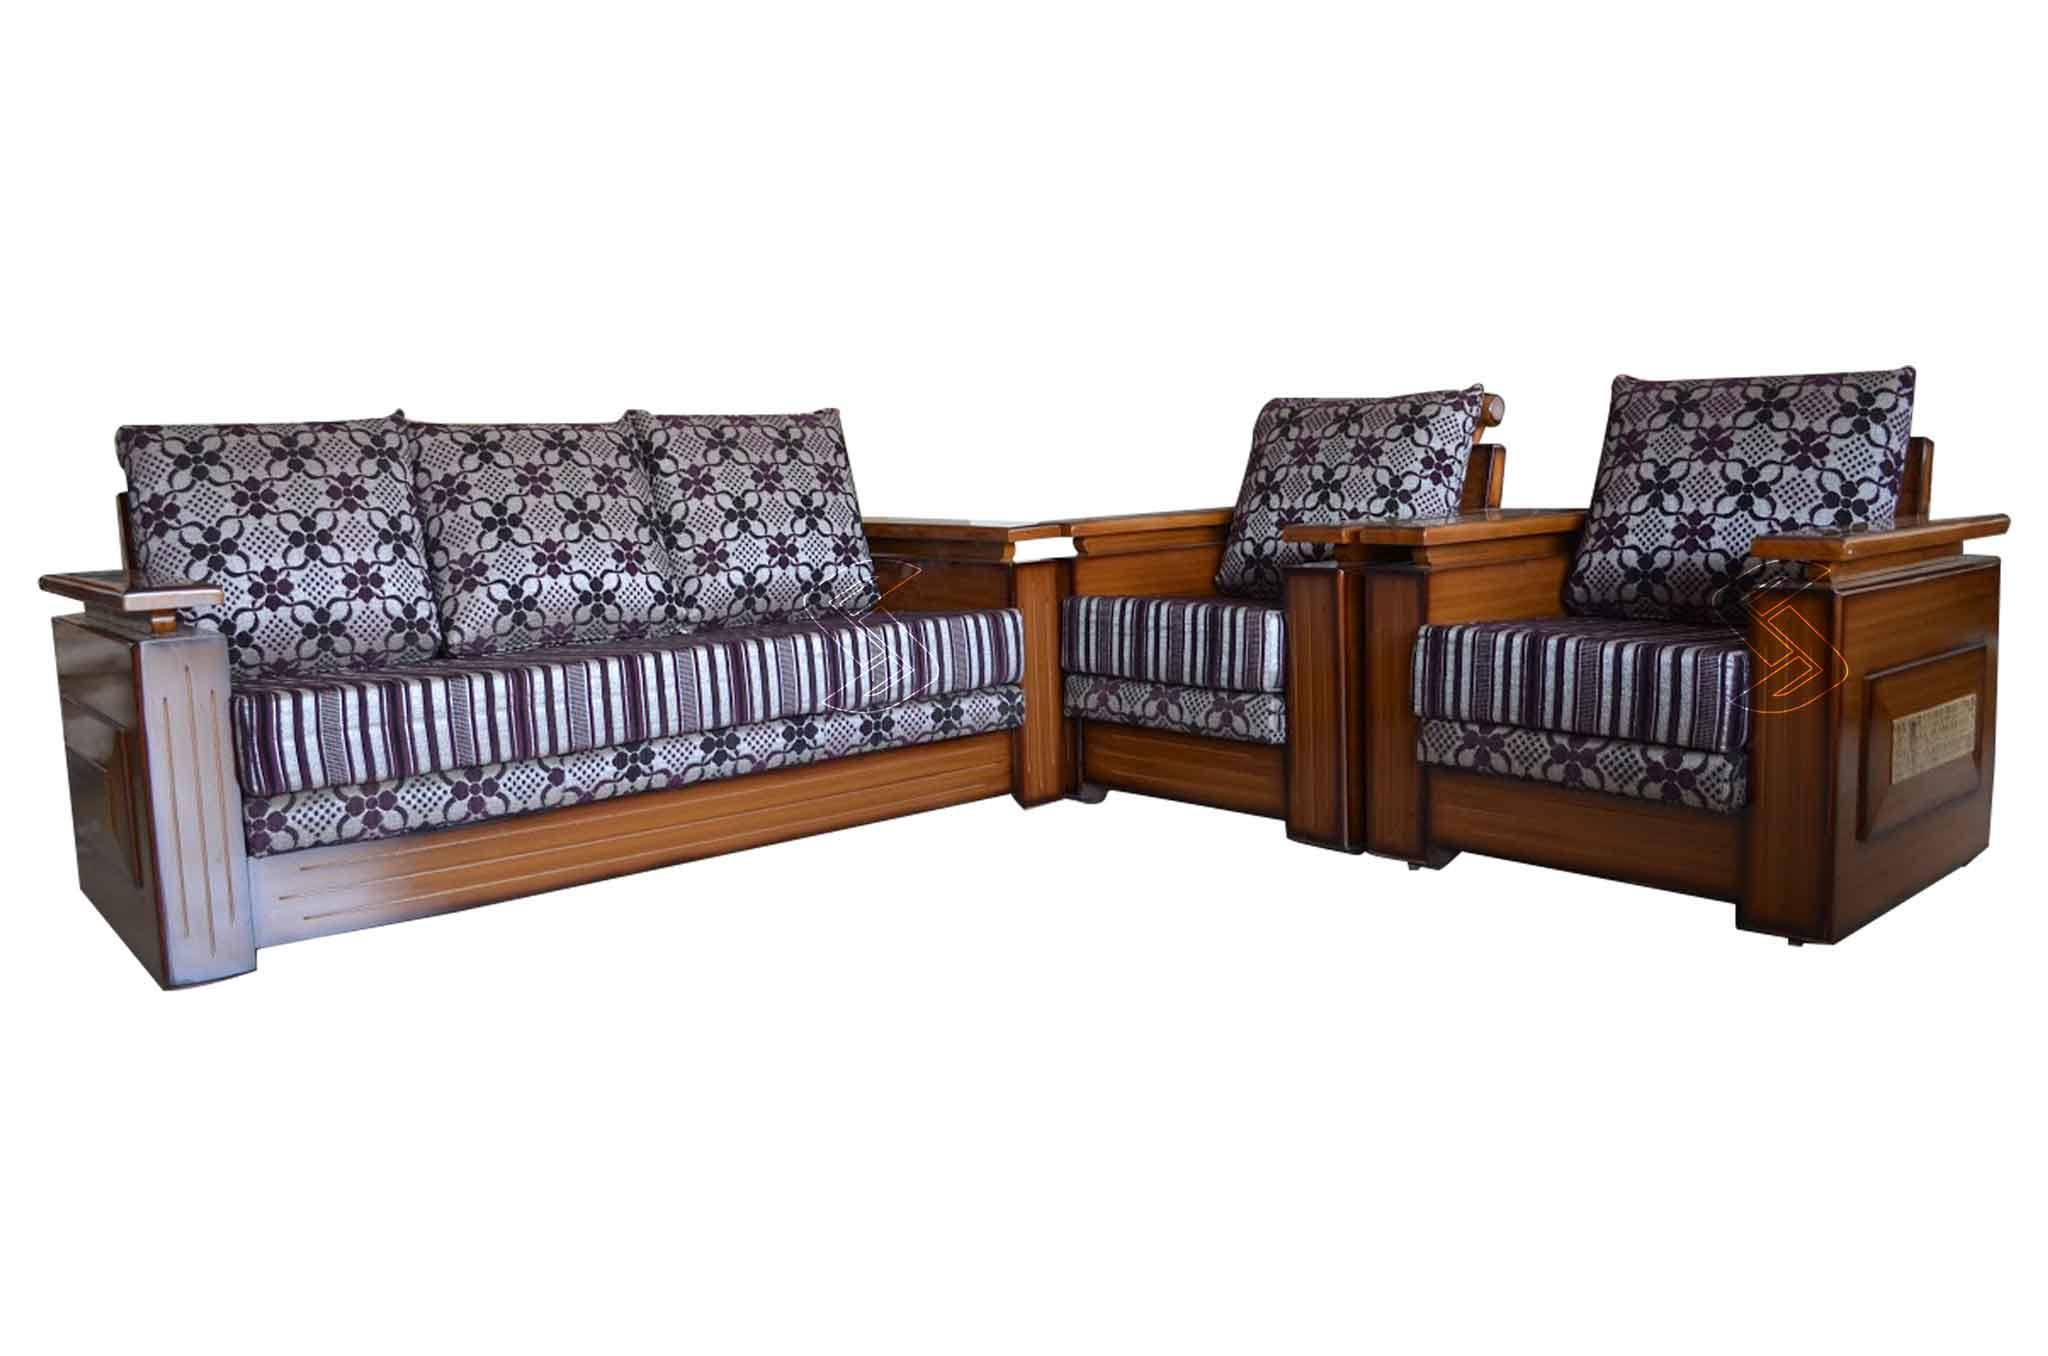 teak wood sofa set olx mahjong couture modular second hand wooden in hyderabad www